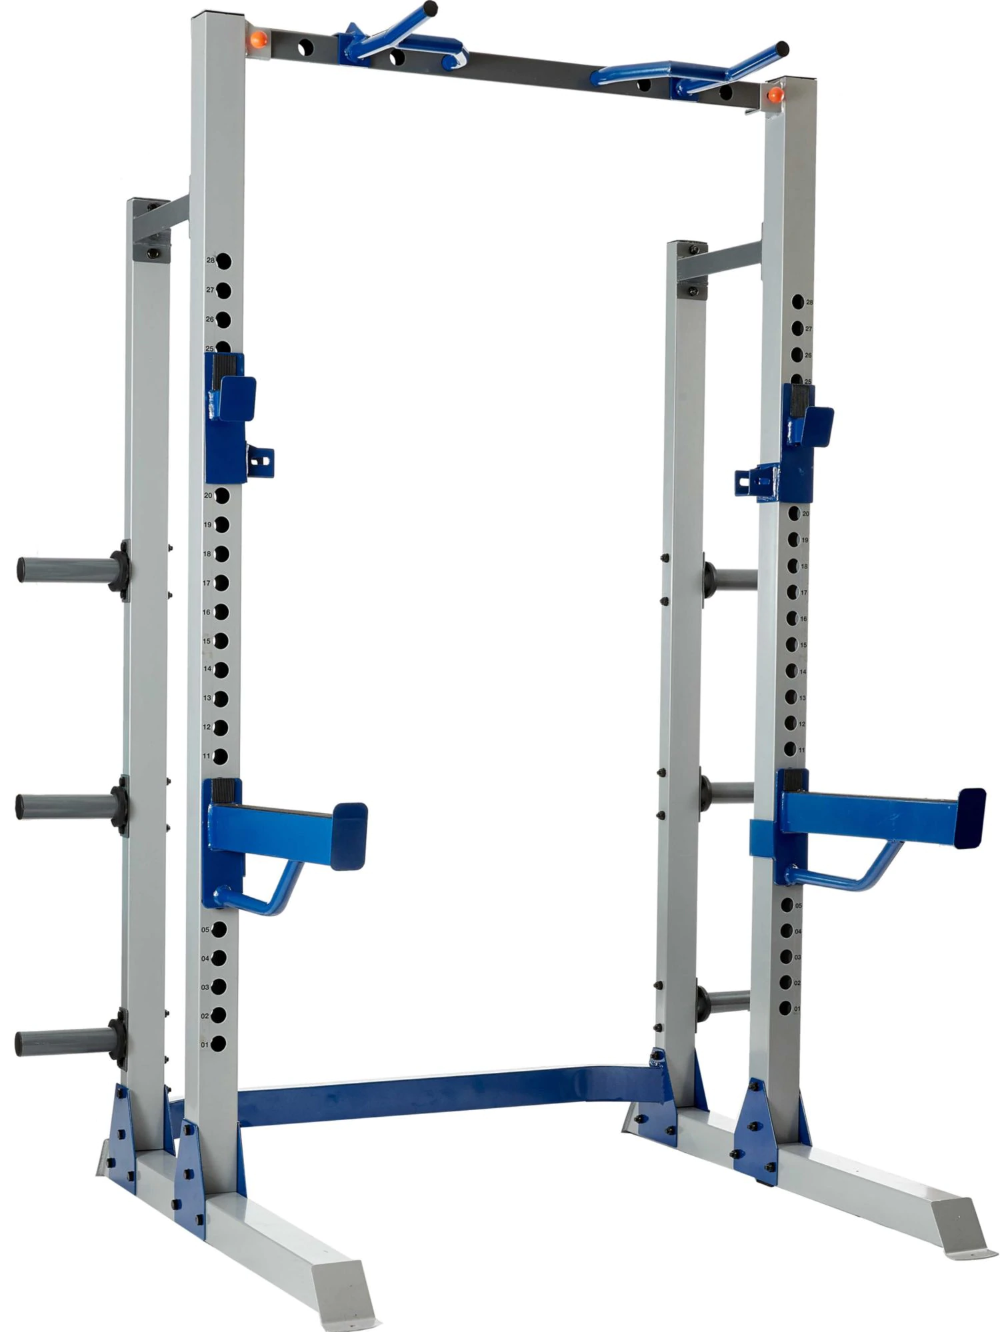 Fitness Gear Pro Half Rack With Images Half Rack Workout Gear